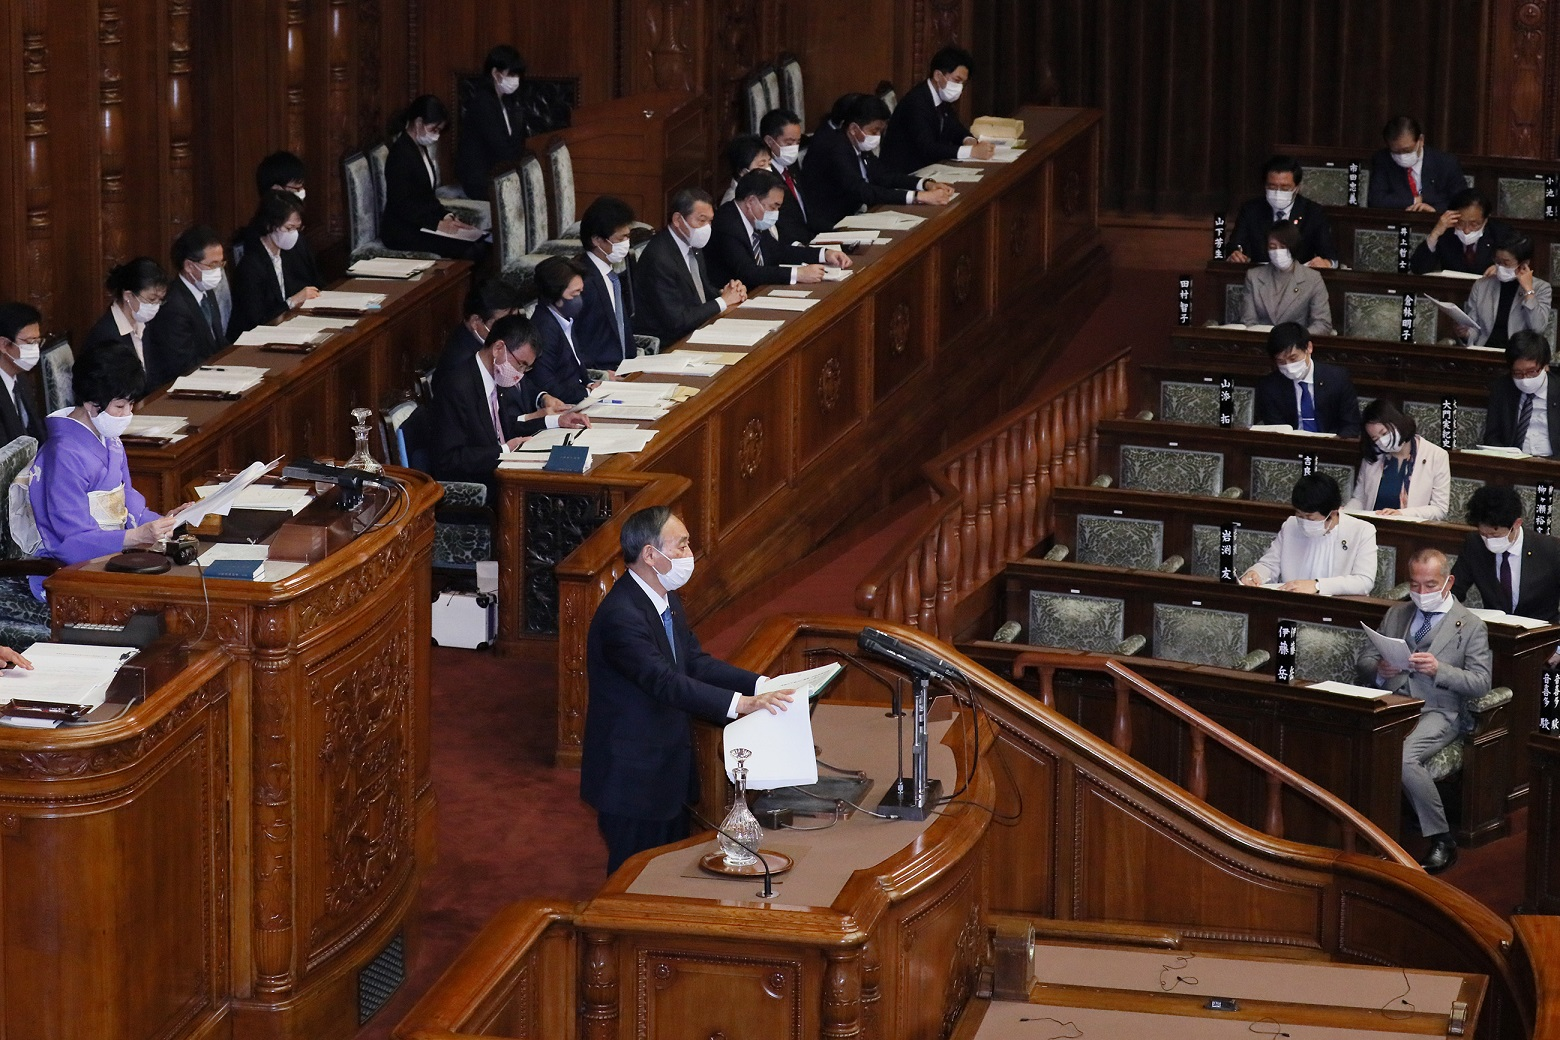 Photograph of the Prime Minister delivering a policy speech during the plenary session of the House of Councillors (7)